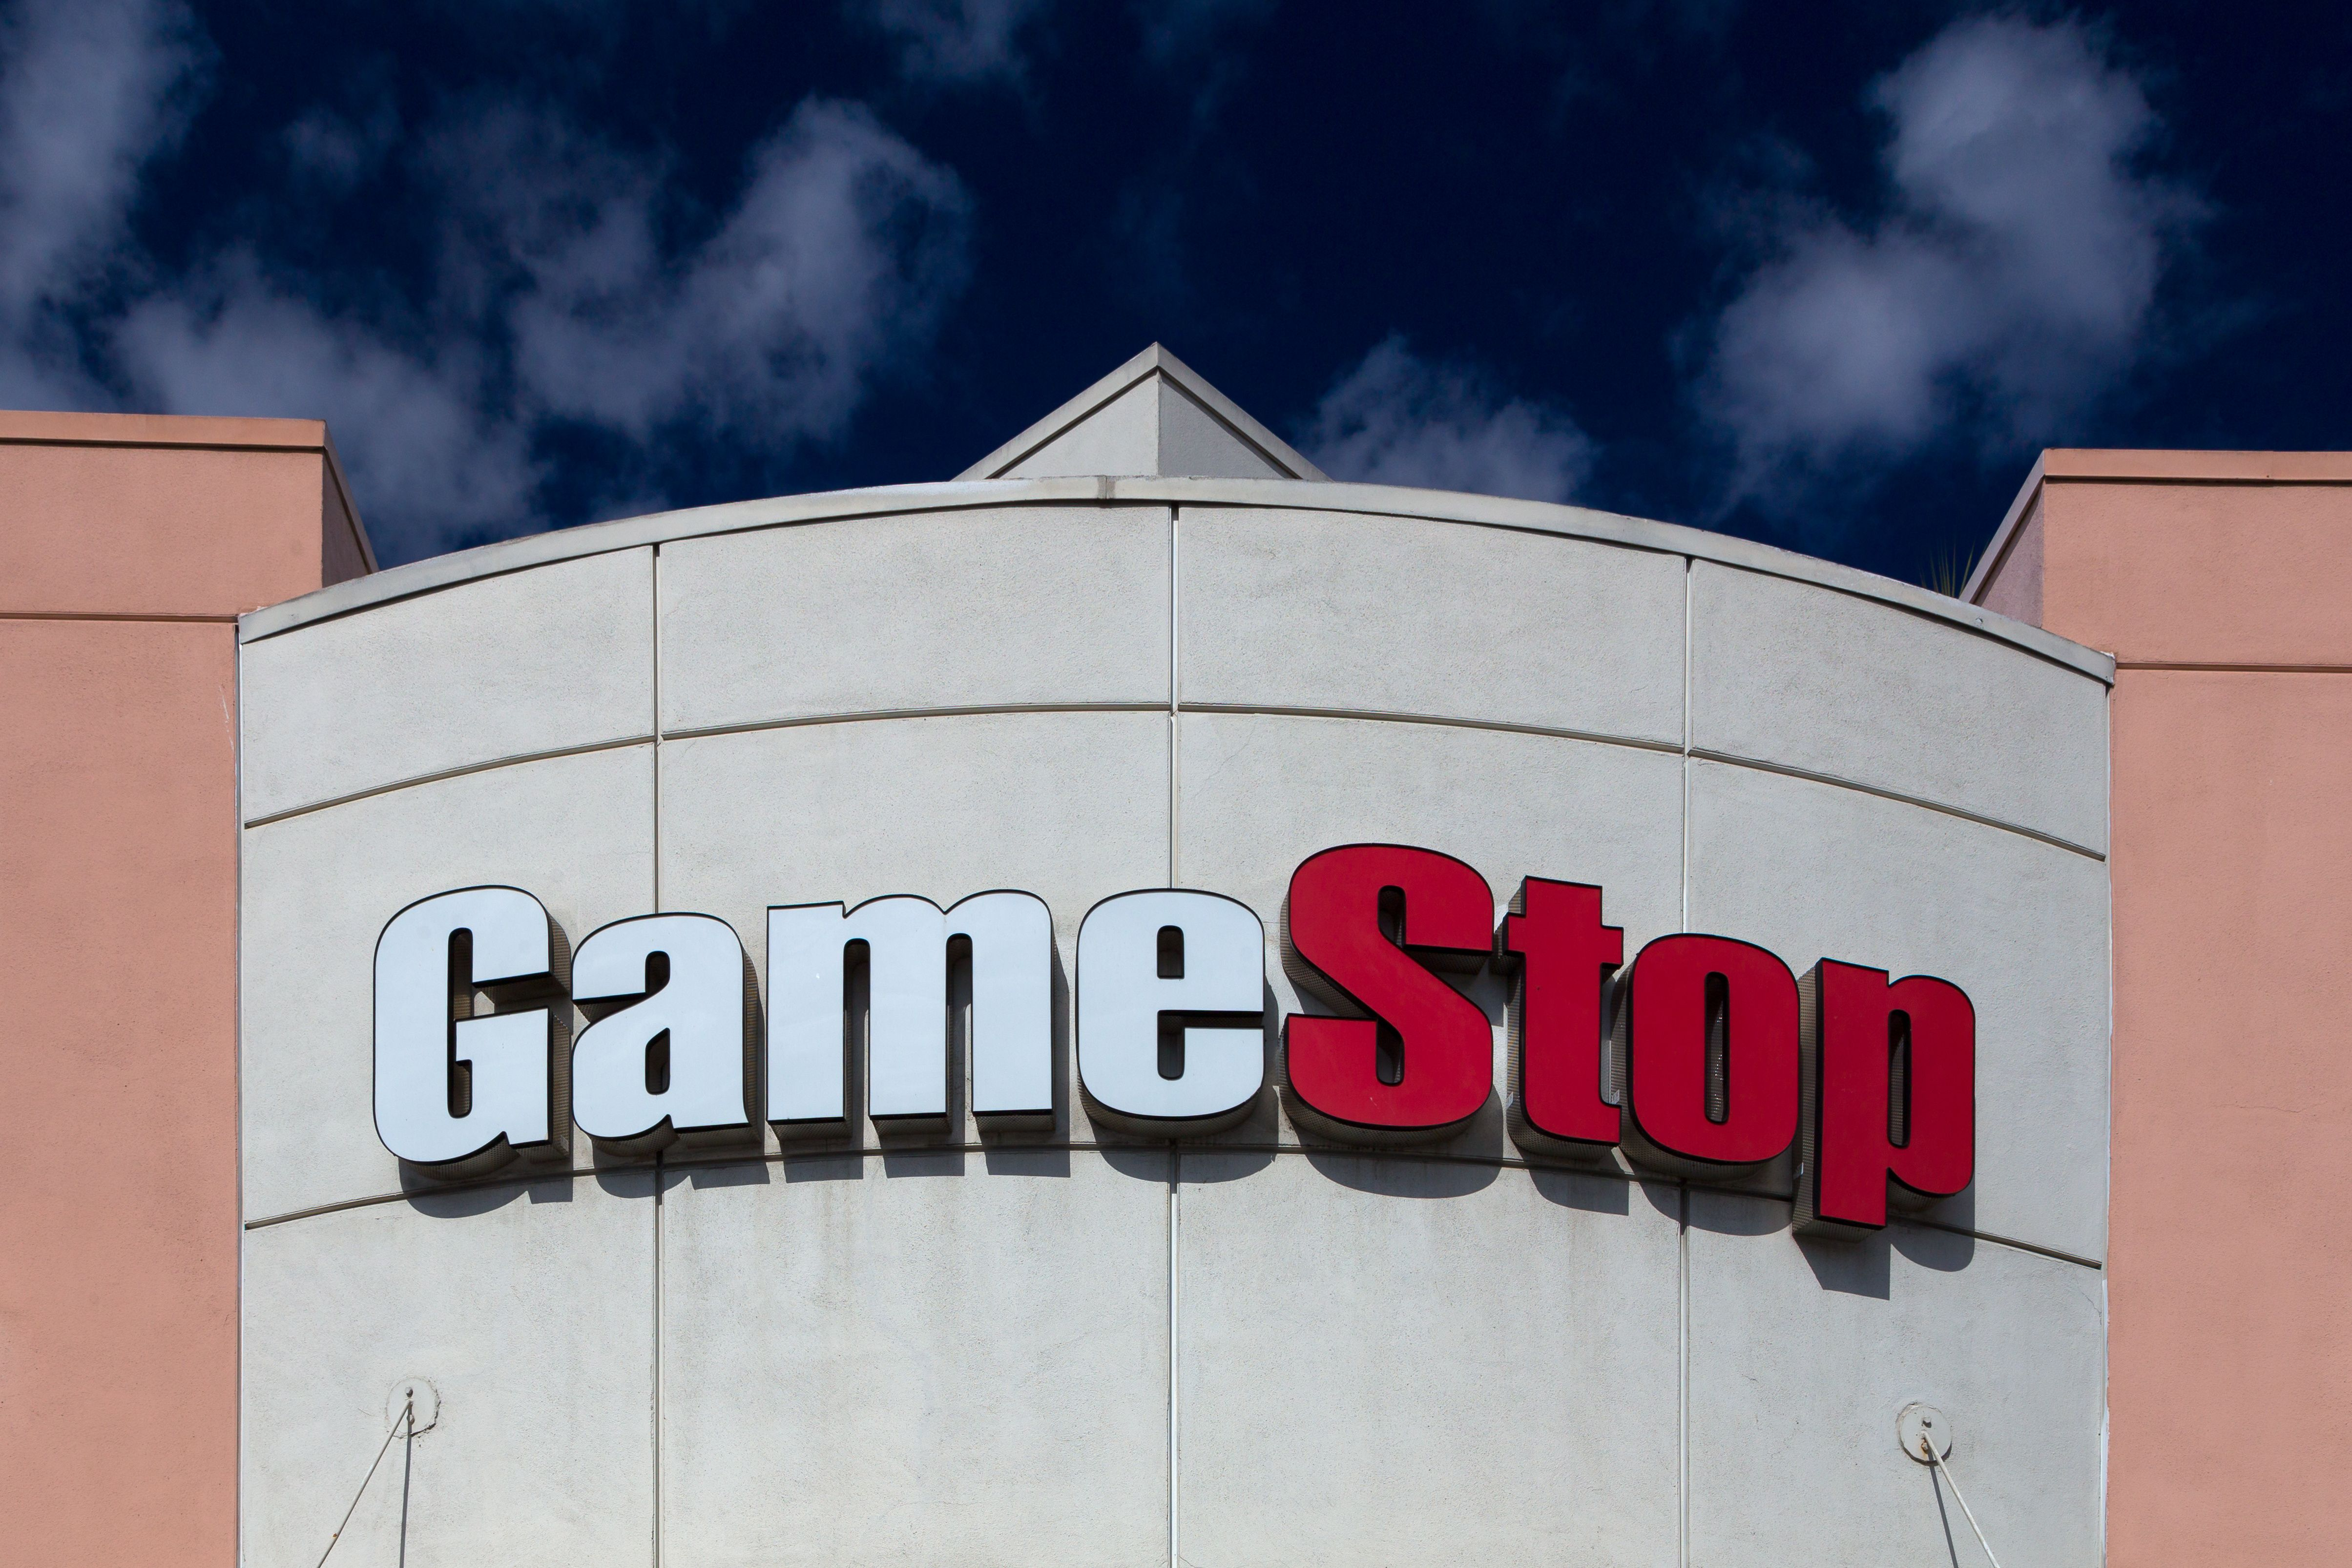 /gamestop-is-a-financial-protest-against-the-global-financial-system-1zv33t6 feature image